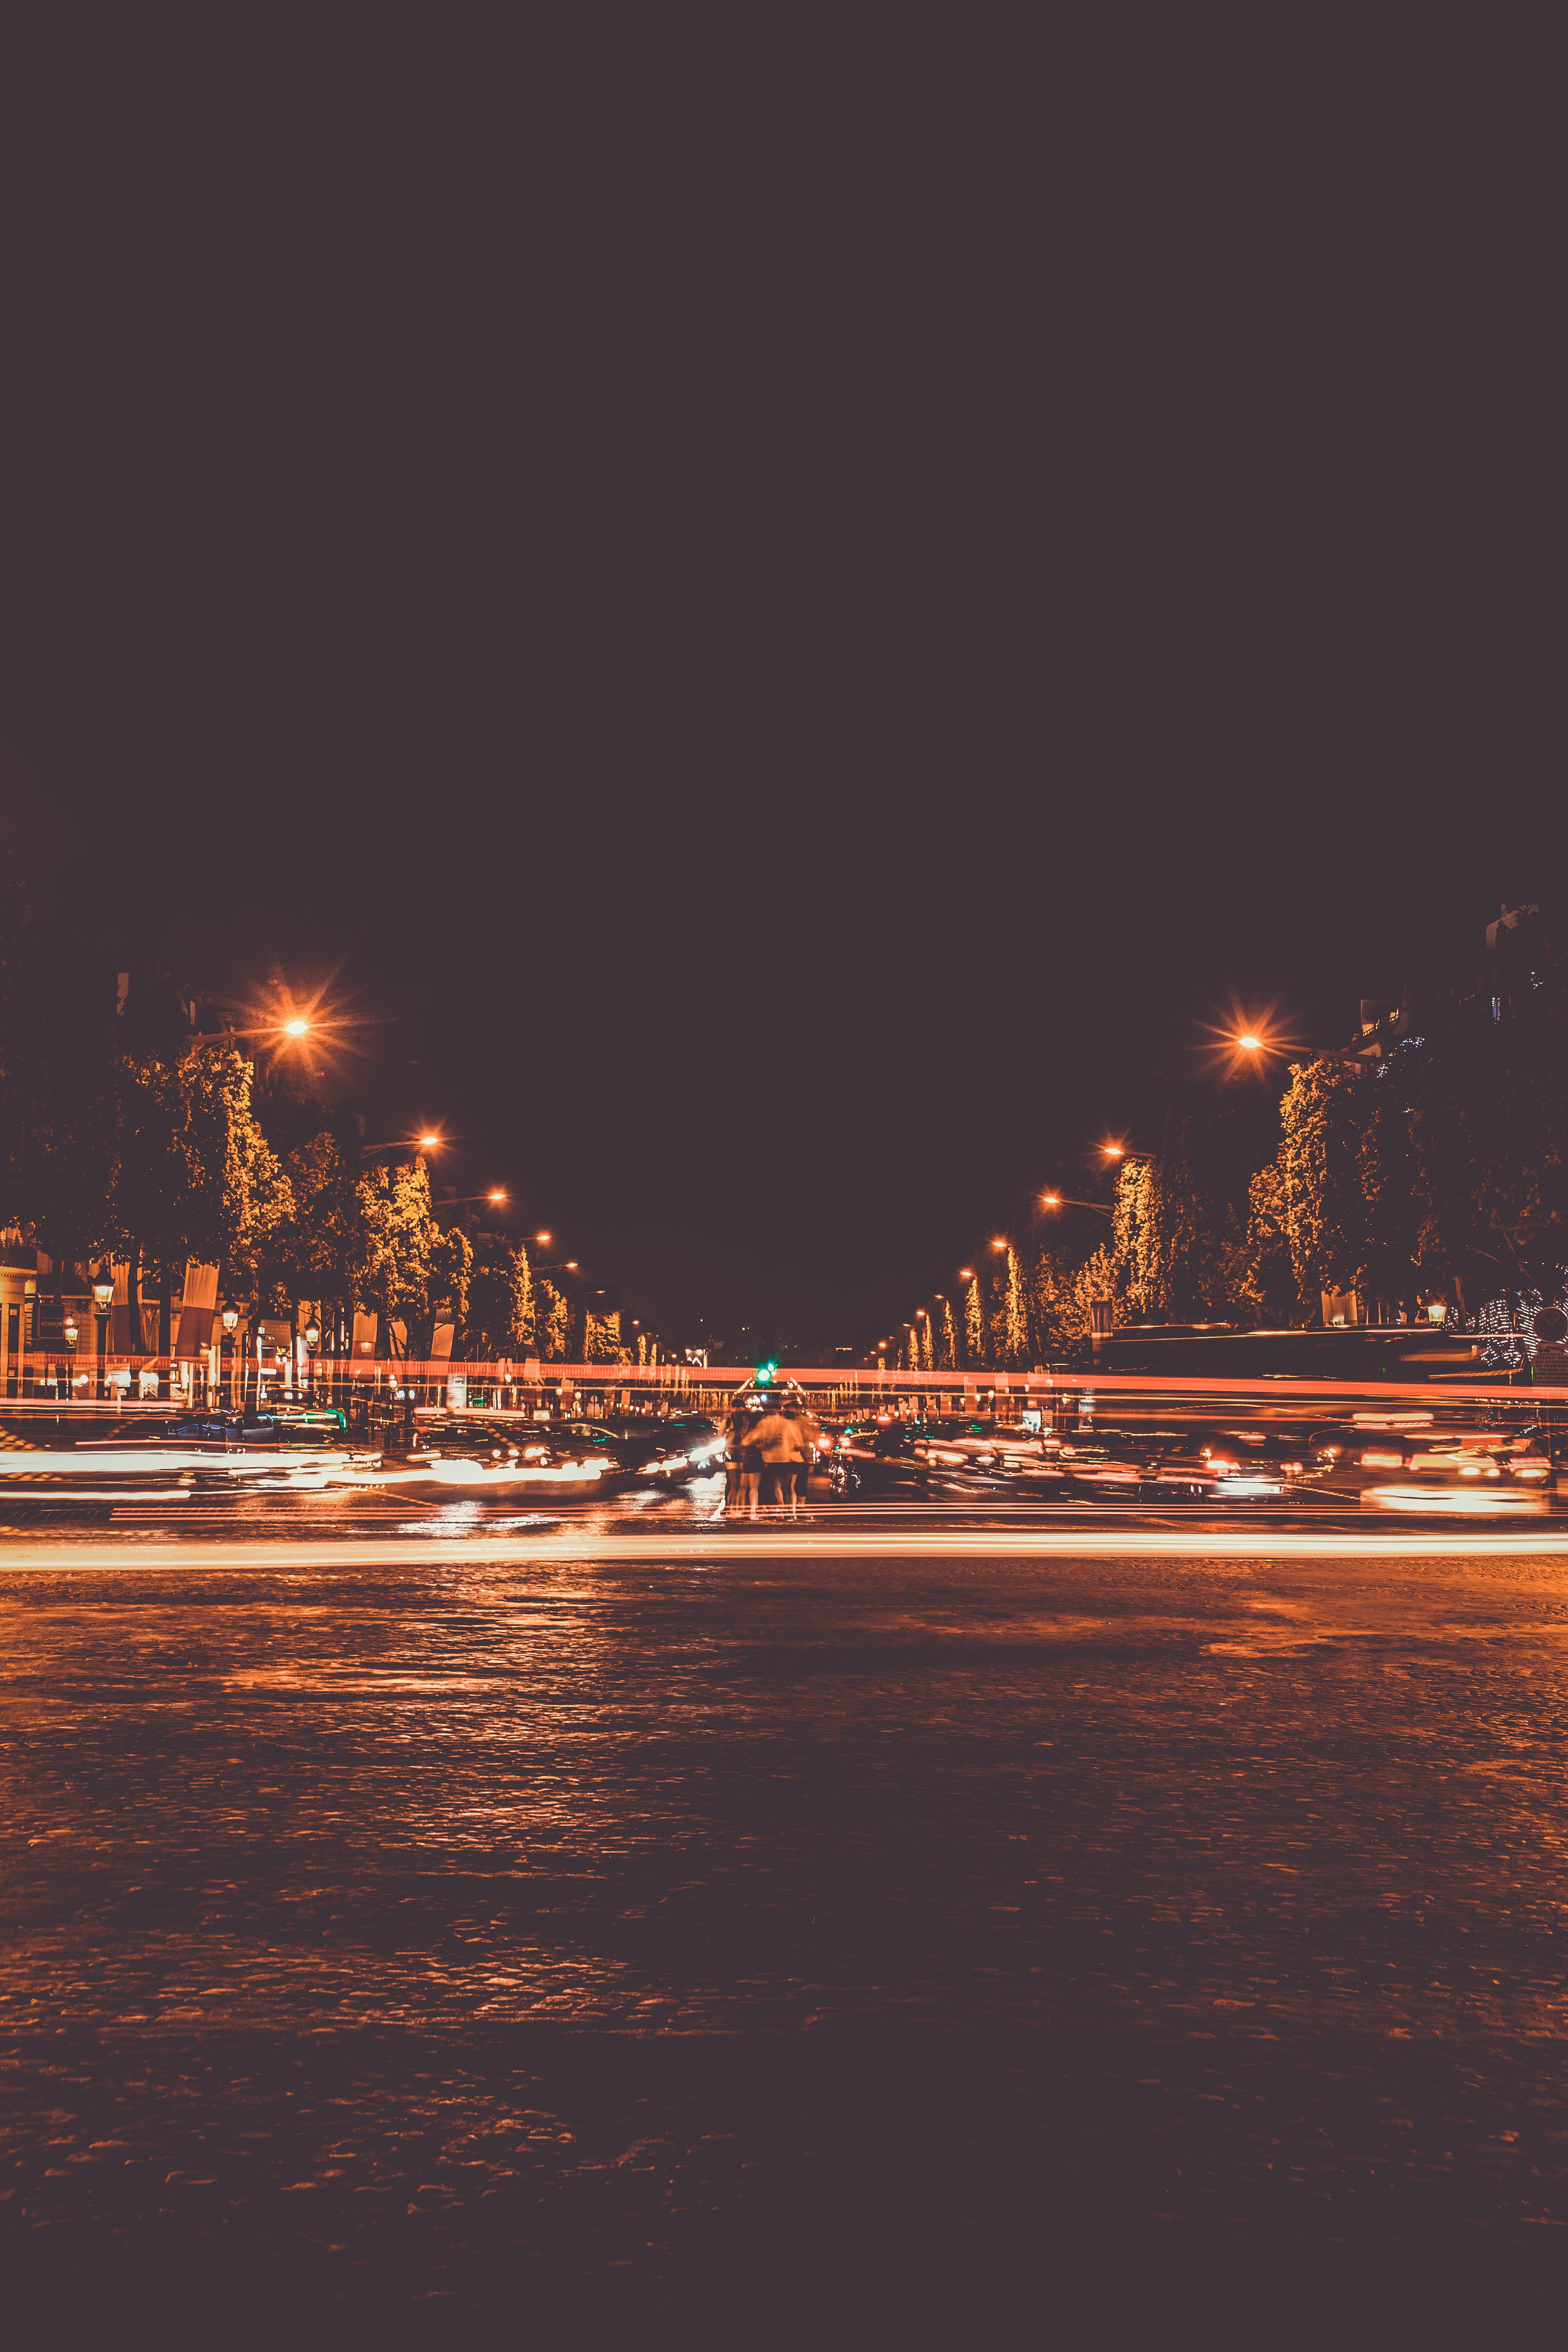 Street Photography, City, Trees, Transportation system, Time lapse, HQ Photo